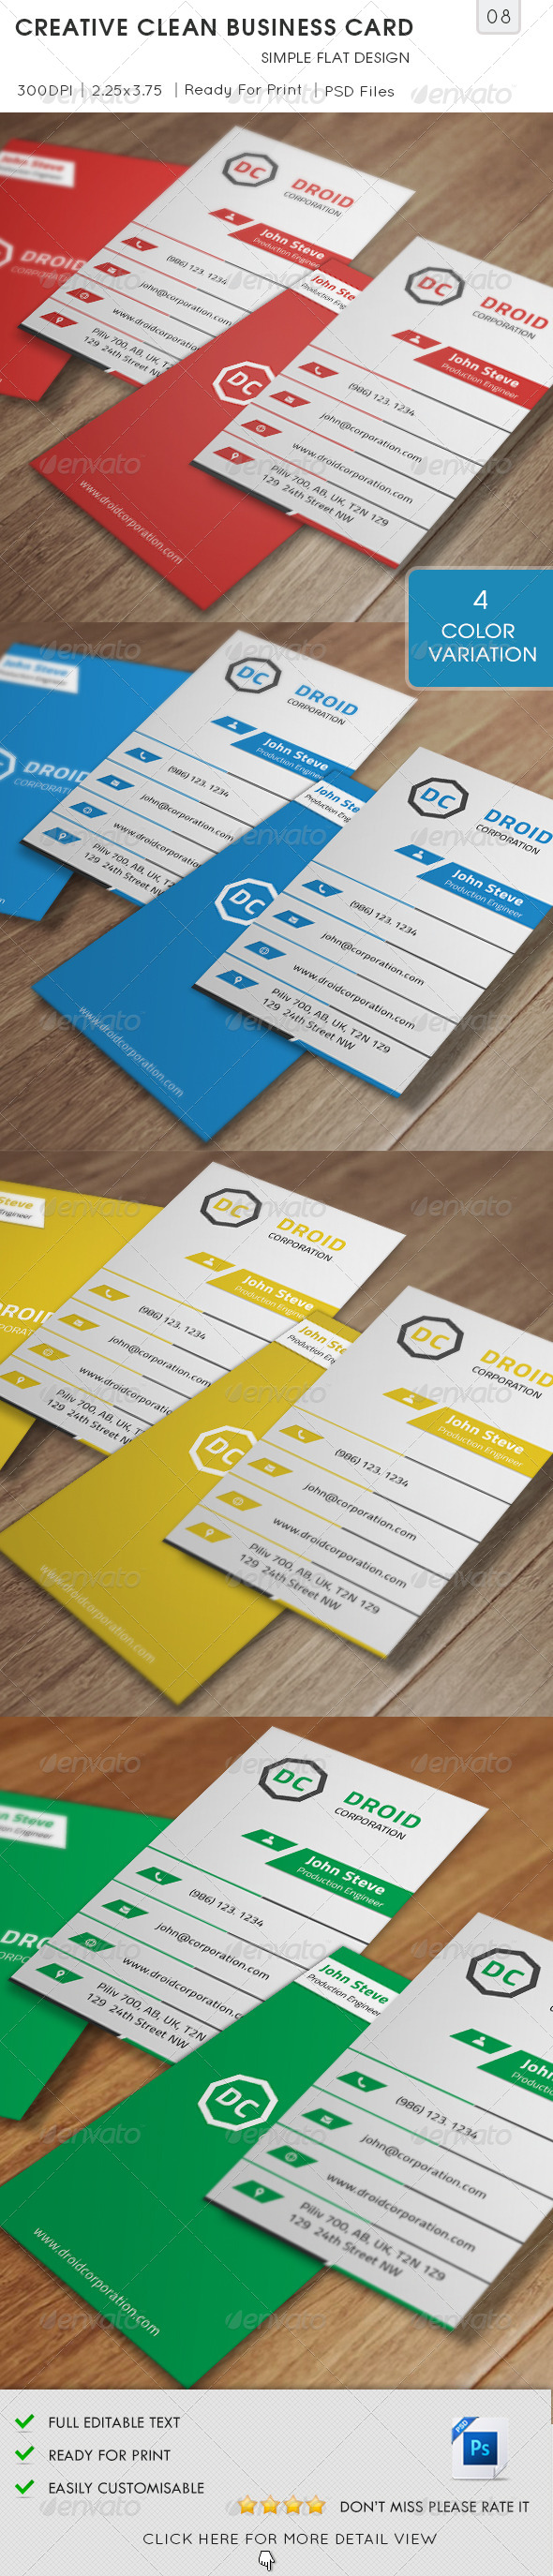 GraphicRiver Creative Clean Business Card v8 5682537